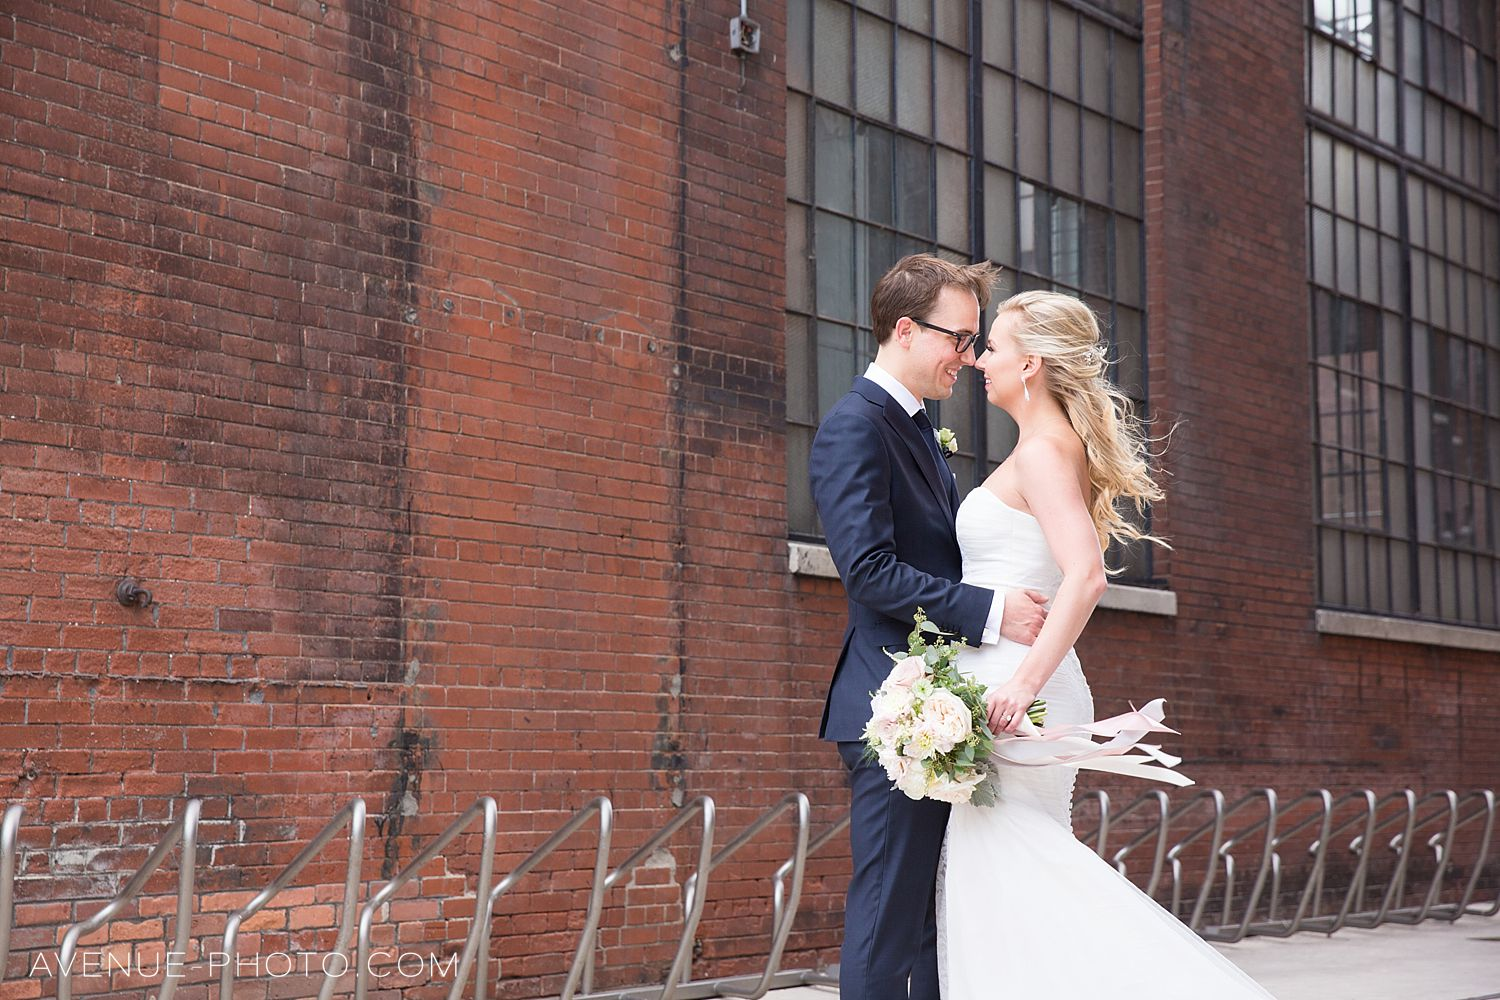 Liberty Village Wedding Photos / Avenue Photo